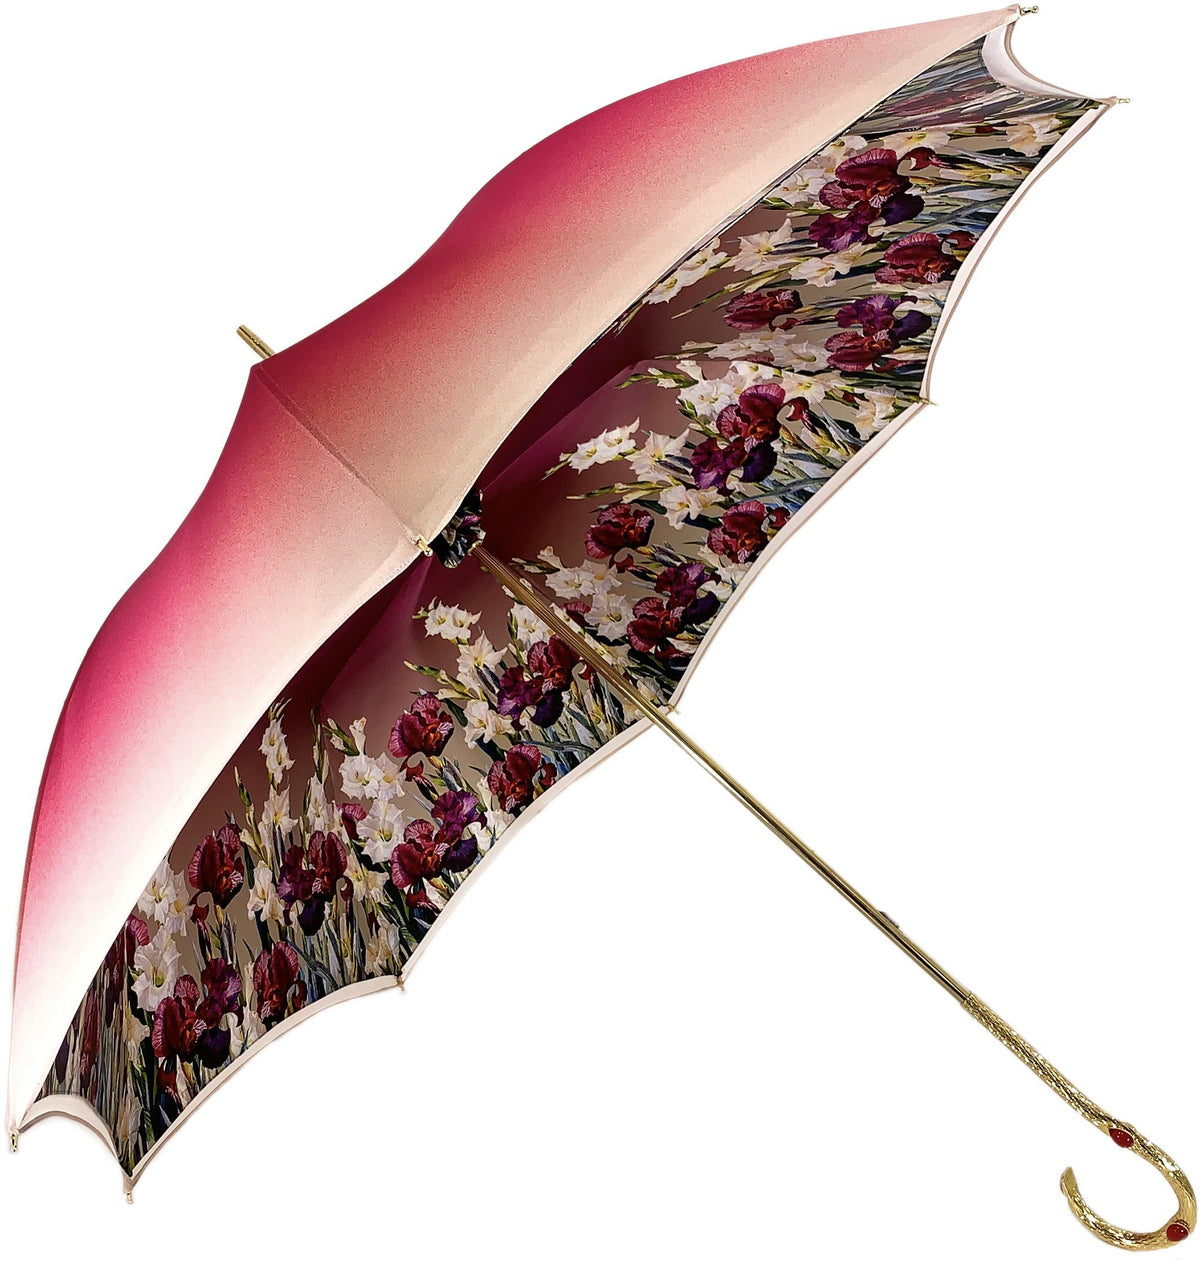 Luxury Poppies Umbrella - New Exclusive Design - il-marchesato